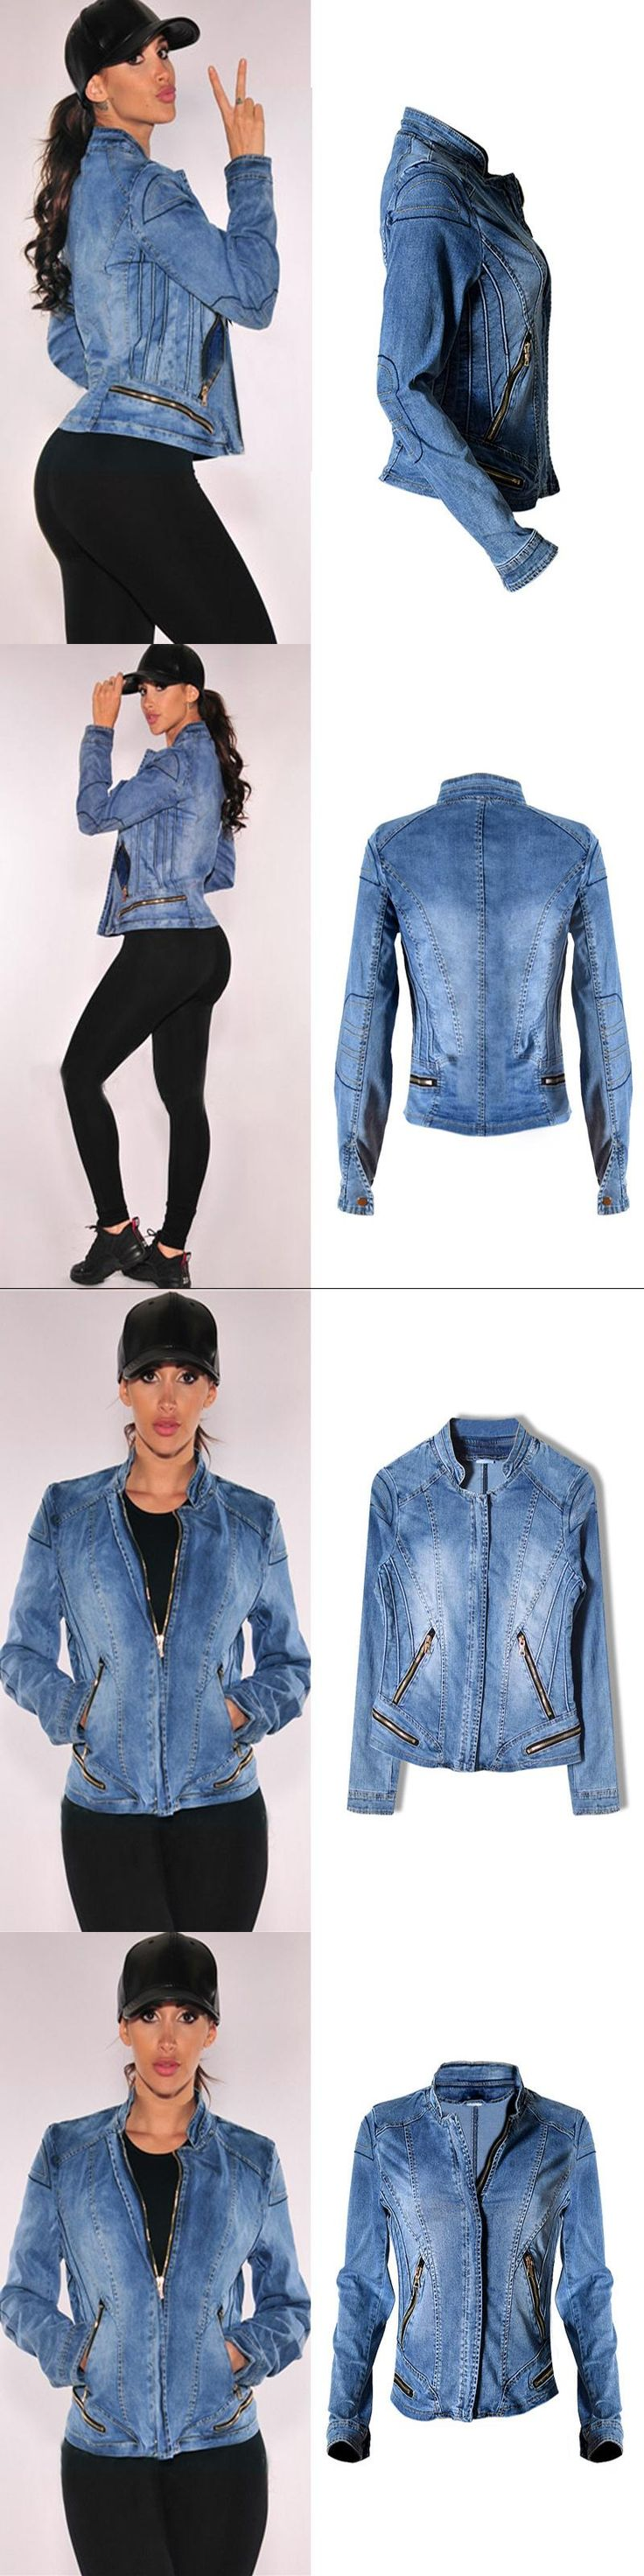 2017 New Hot Sale Popular Women Baseball Jackets Stretch Denim Jacket Multi-zipper Short Motor Style Chaqueta Female Denim Coats